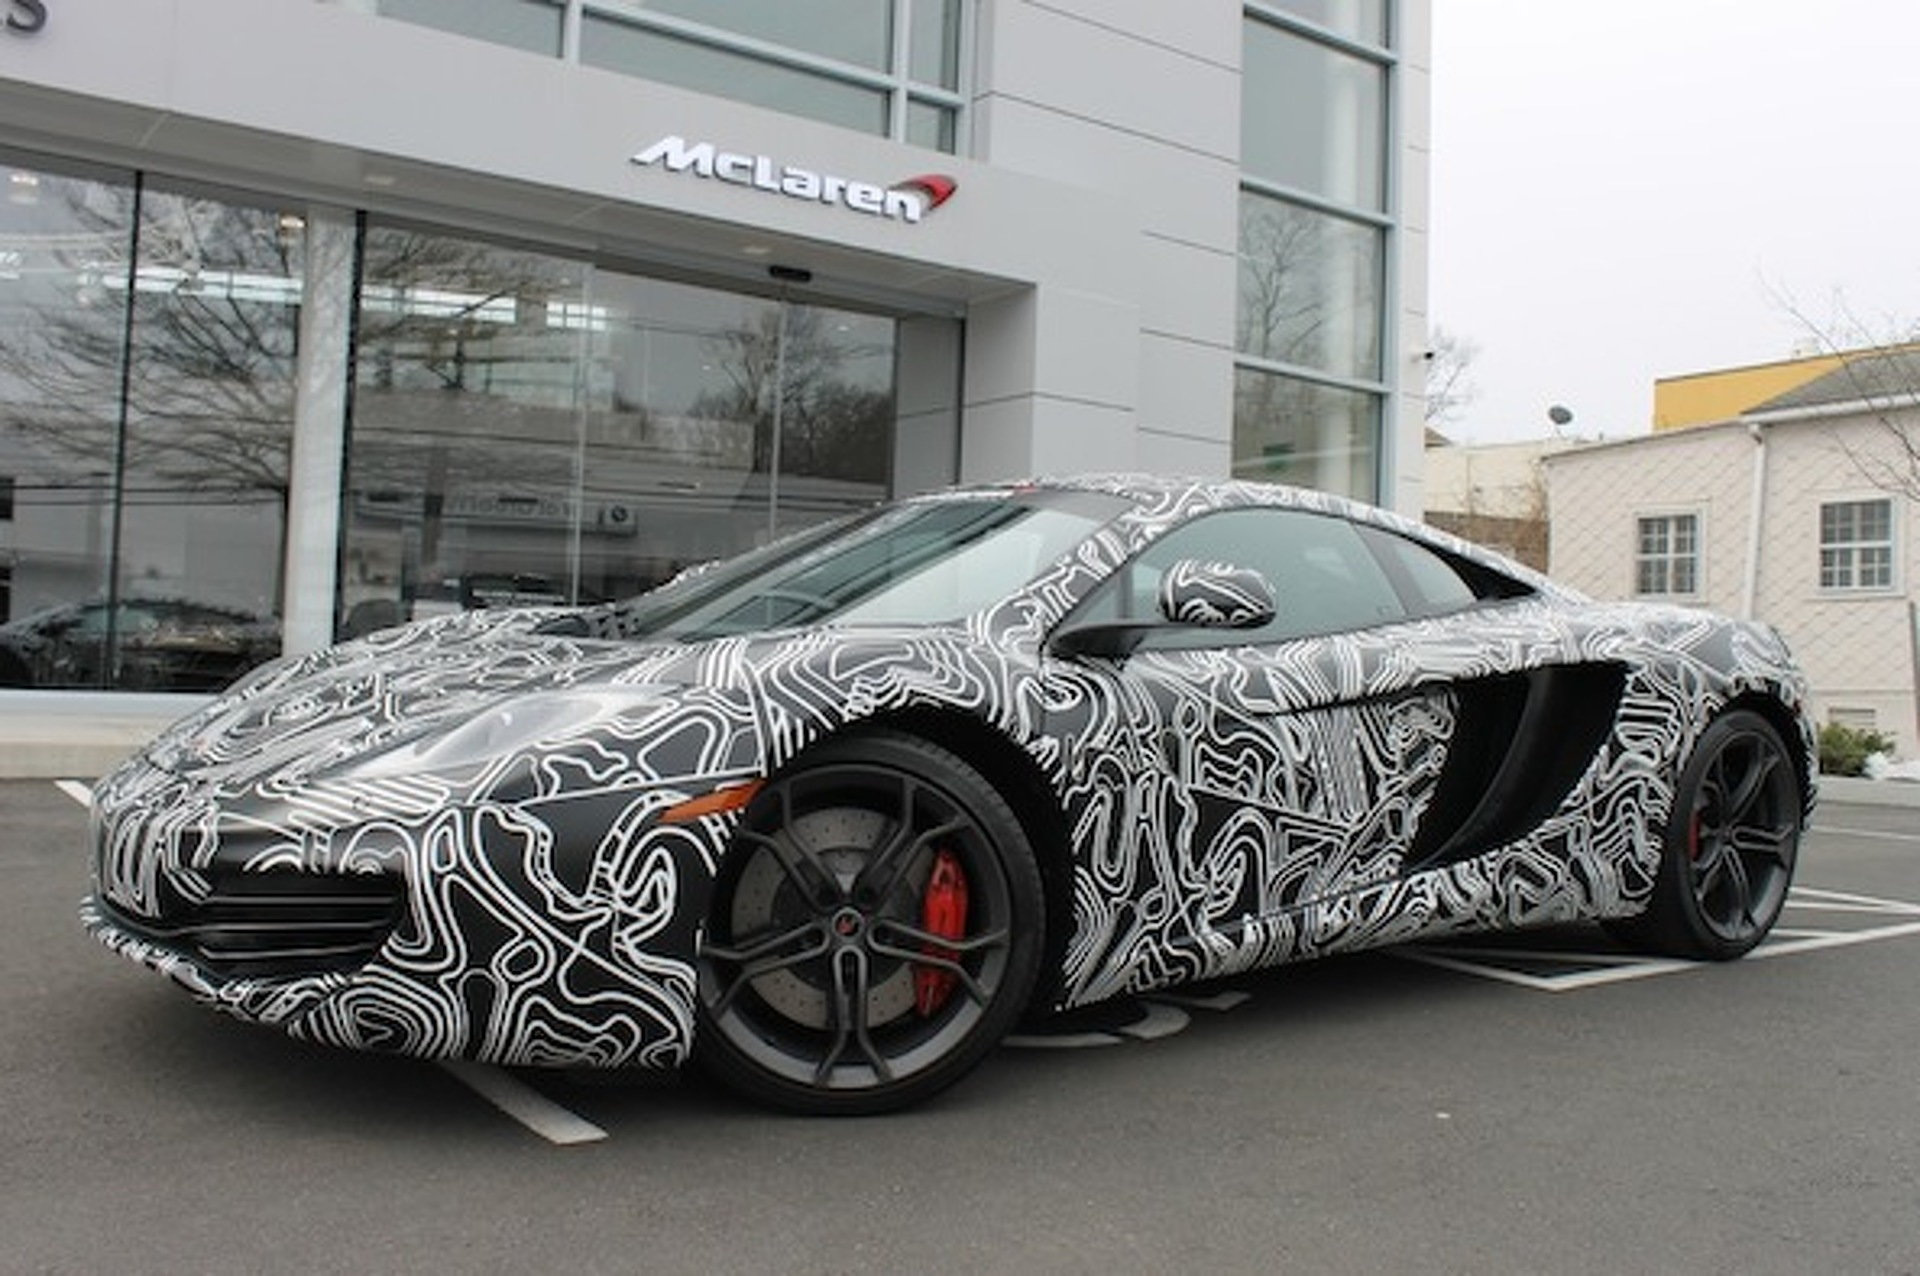 Classified of the Week: McLaren MP4-12C Covered in Camo